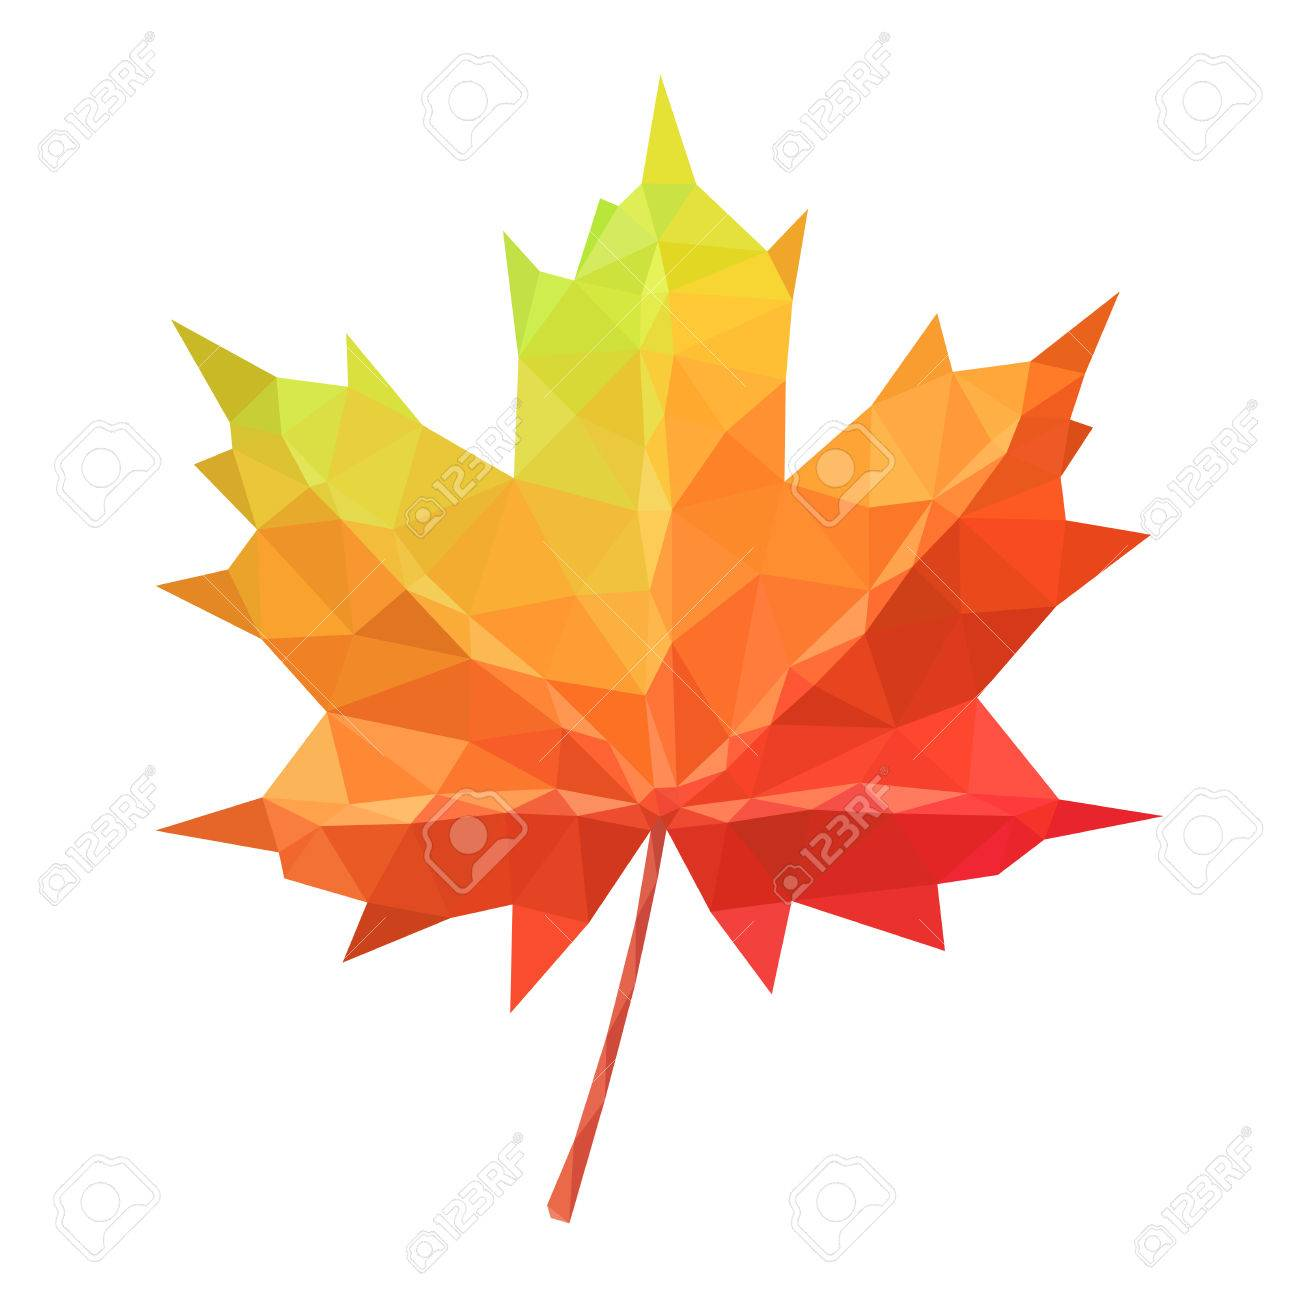 Low poly vector maple leaf geometric pattern - 63113752